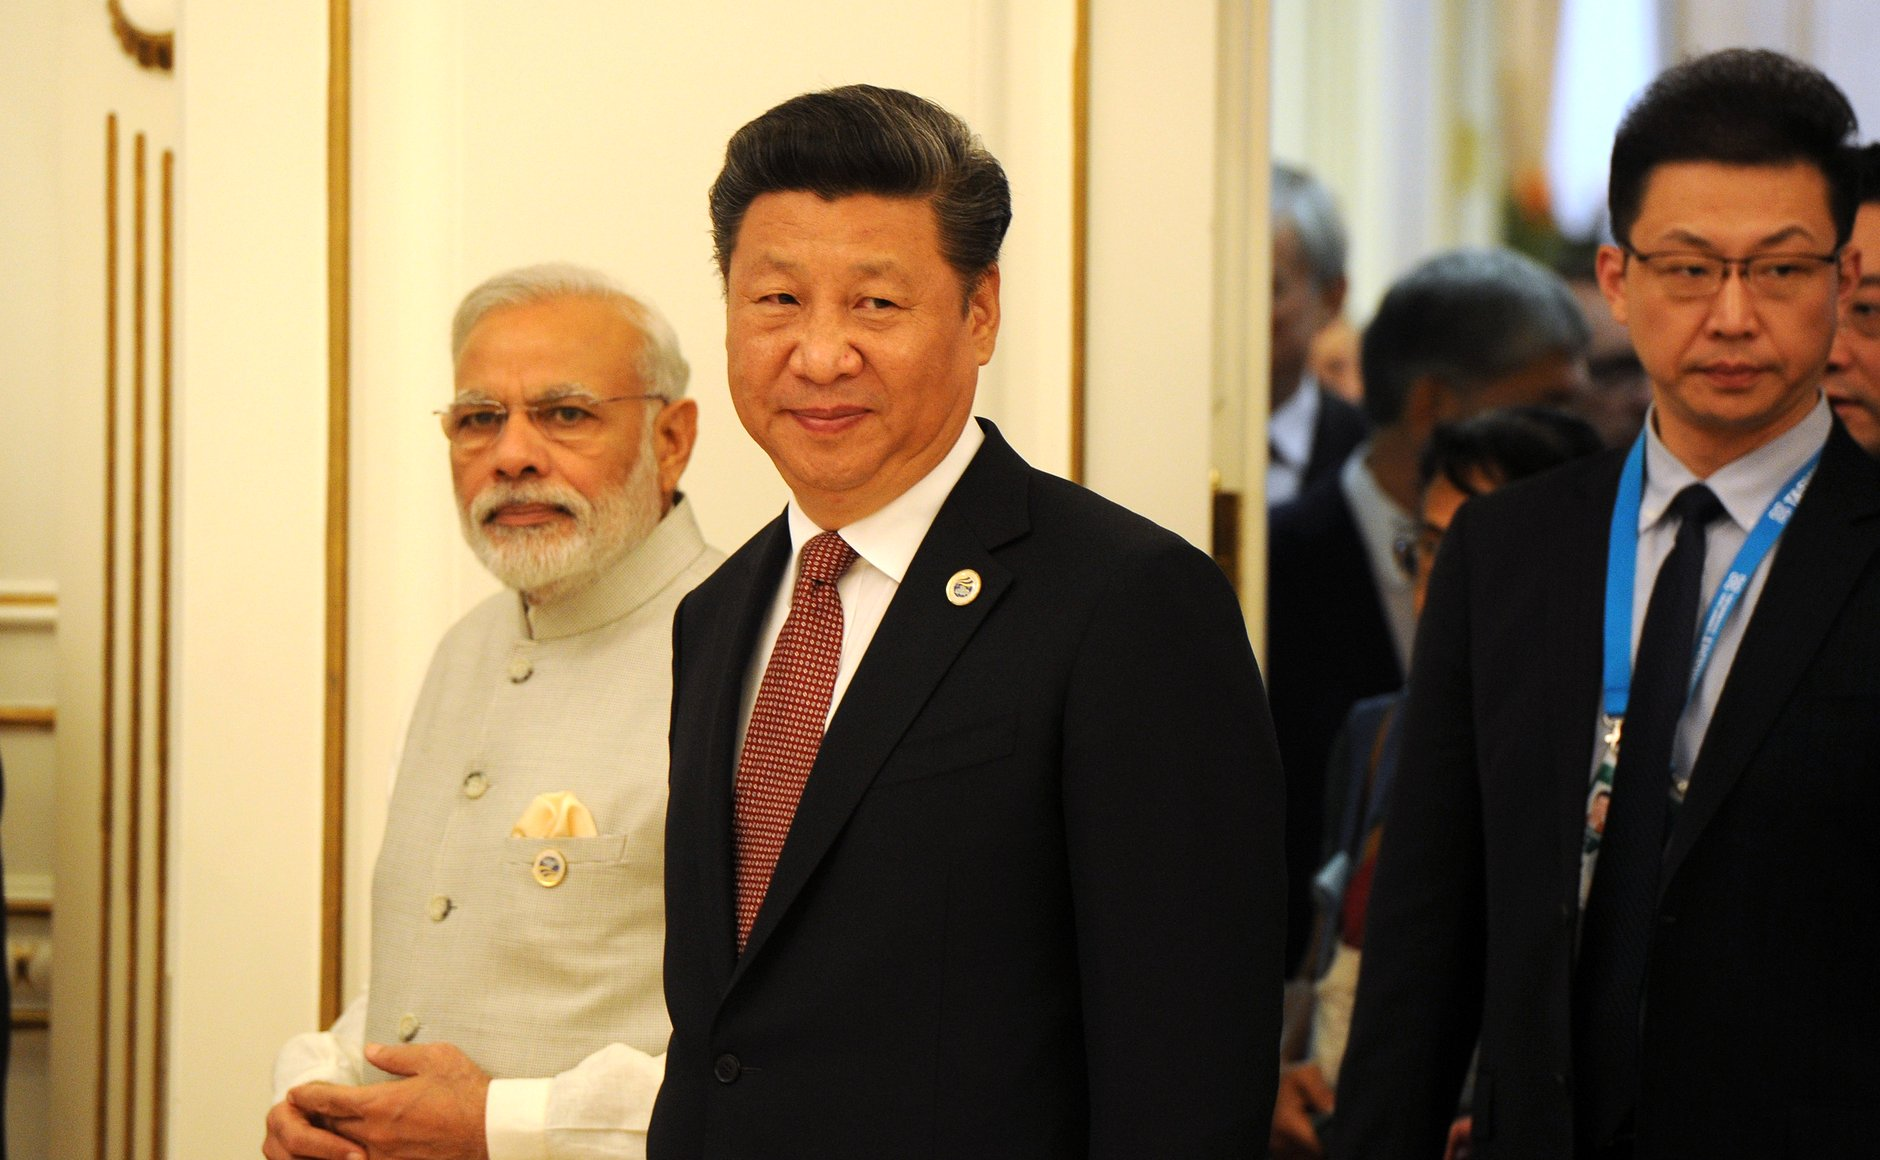 File:Indian Prime Minister Narendra Modi and Chinese Prime Minister Xi Jinping before the start of the expanded format meeting of the Shanghai Cooperation Organisation Council of Heads of State.jpg - Wikimedia Commons